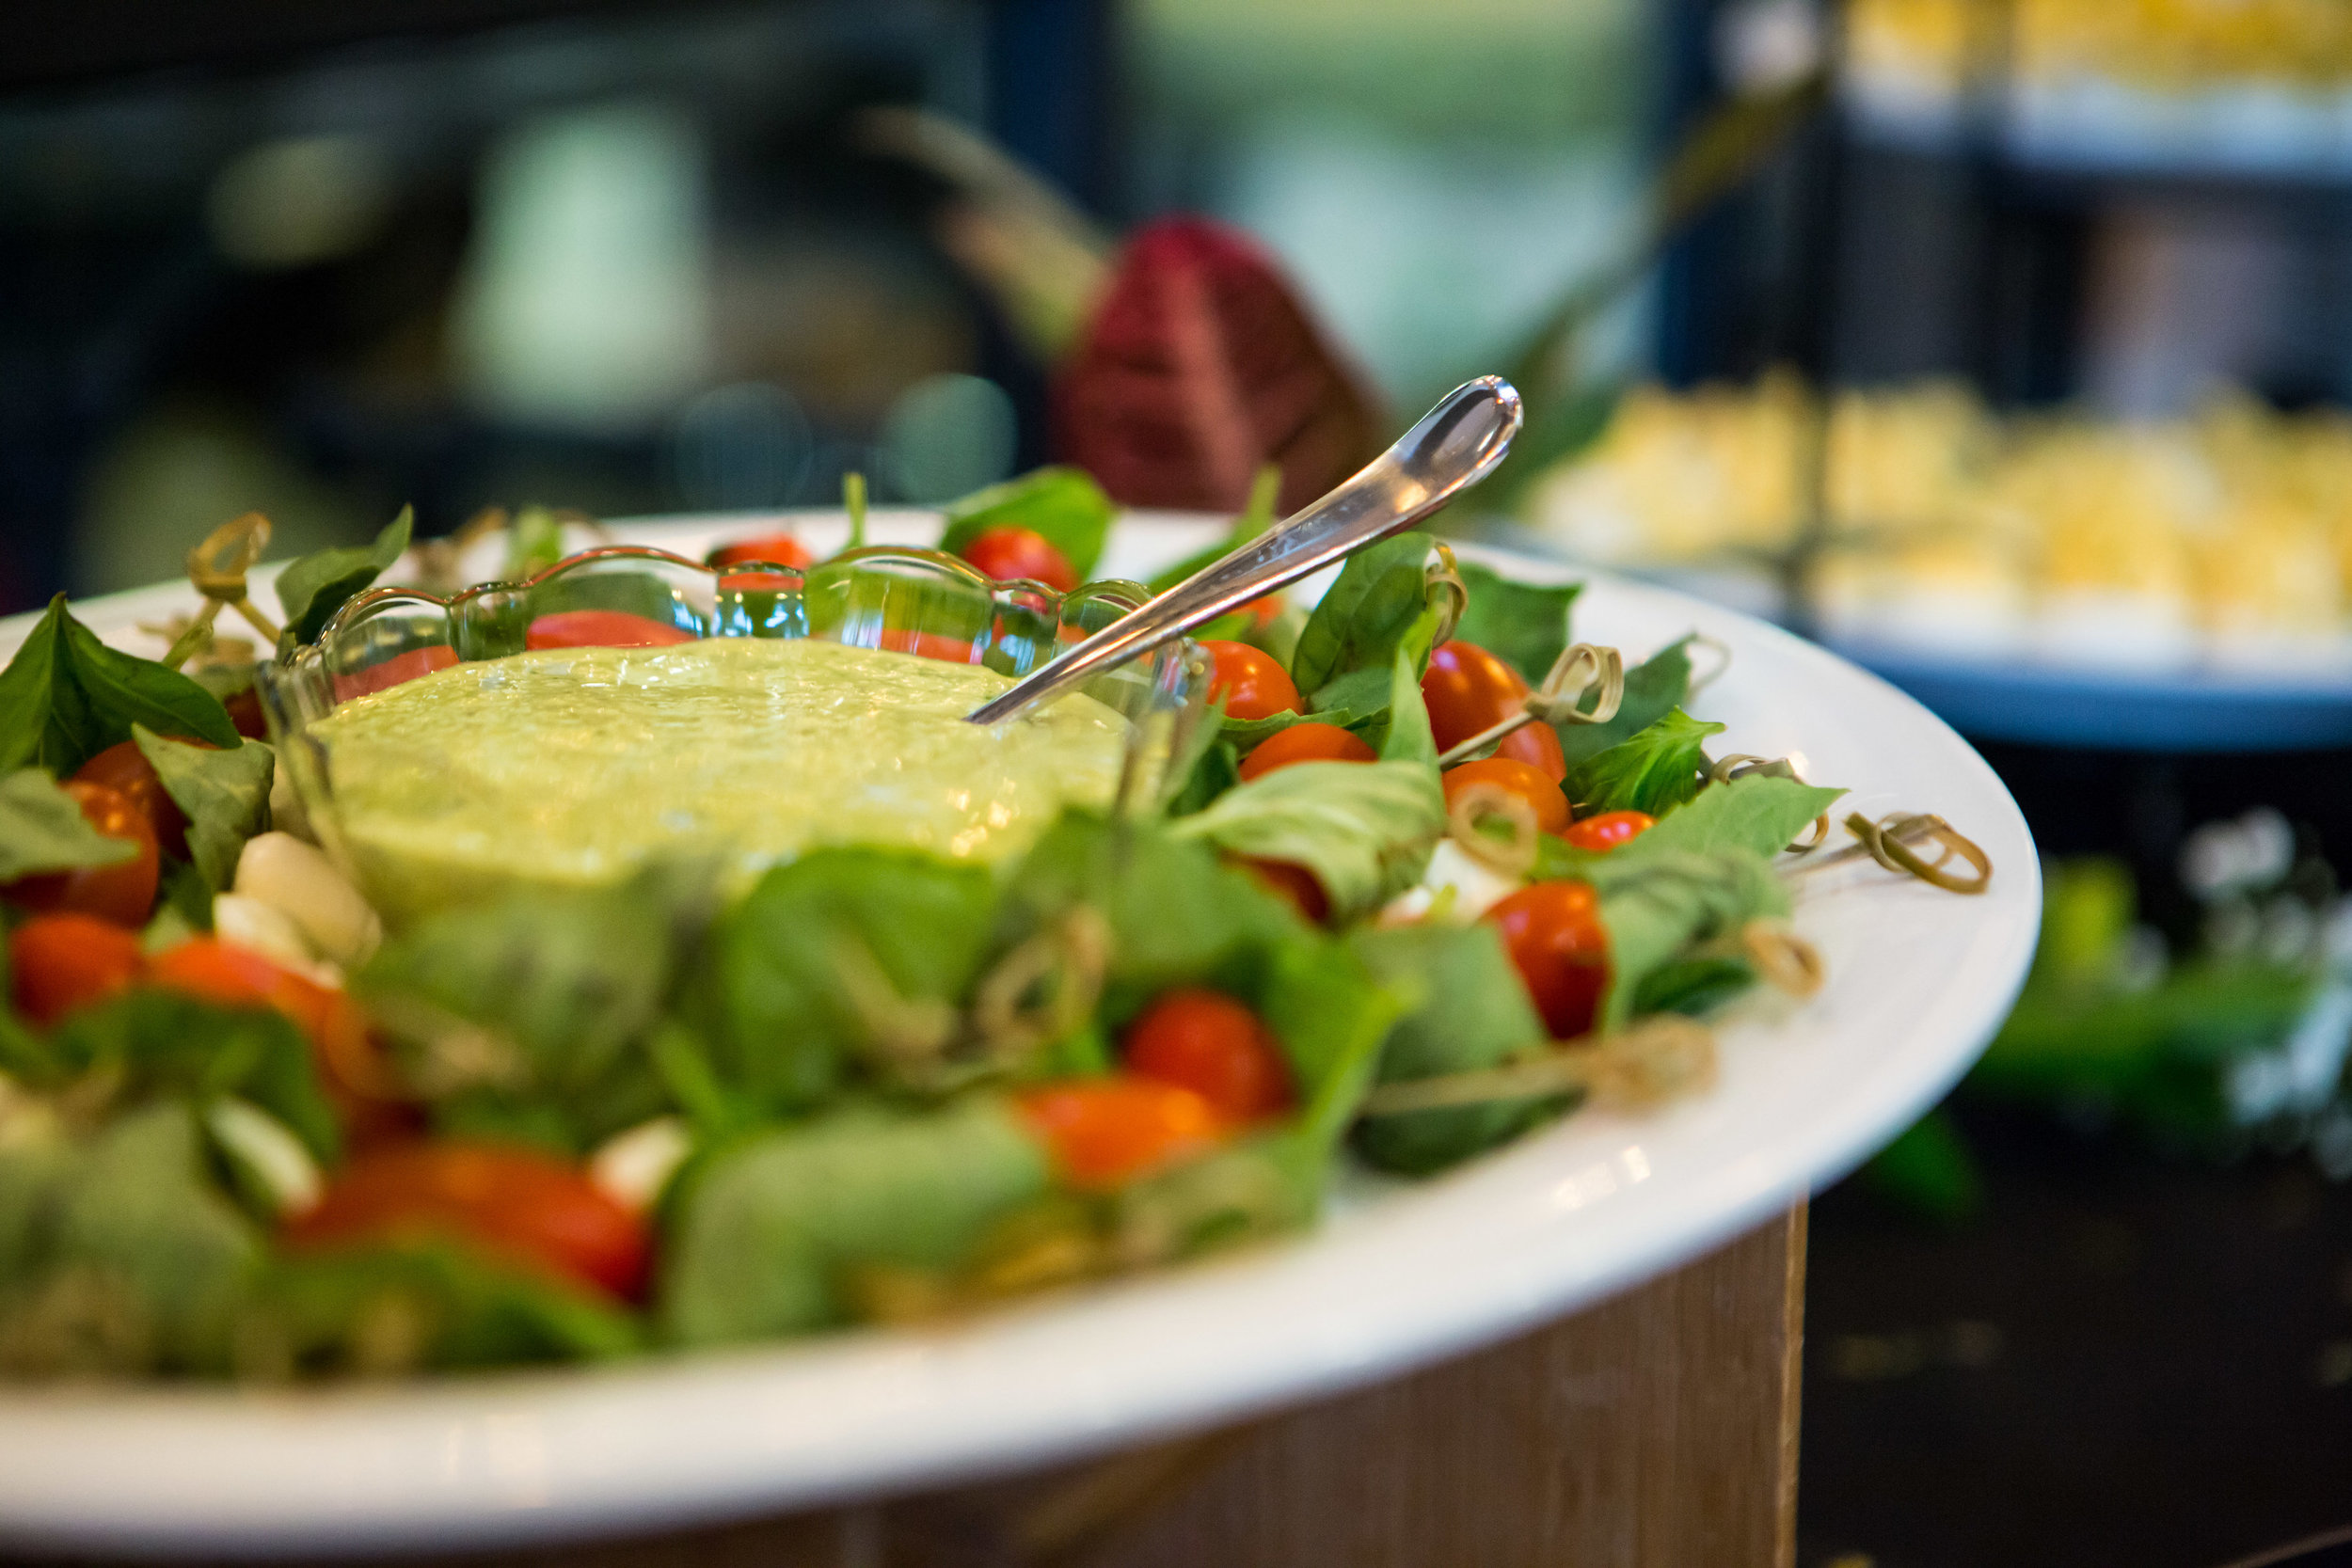 """Food & Bev Events - Food by Elephants Catering & Events from Nurture Realty's Client Appreciation Casino NightPhoto by Jeremy Running Photography""""If you really want to make a friend, go to someone's house and eat…The people who give you their food give you their heart"""" - Cesar Chavez"""